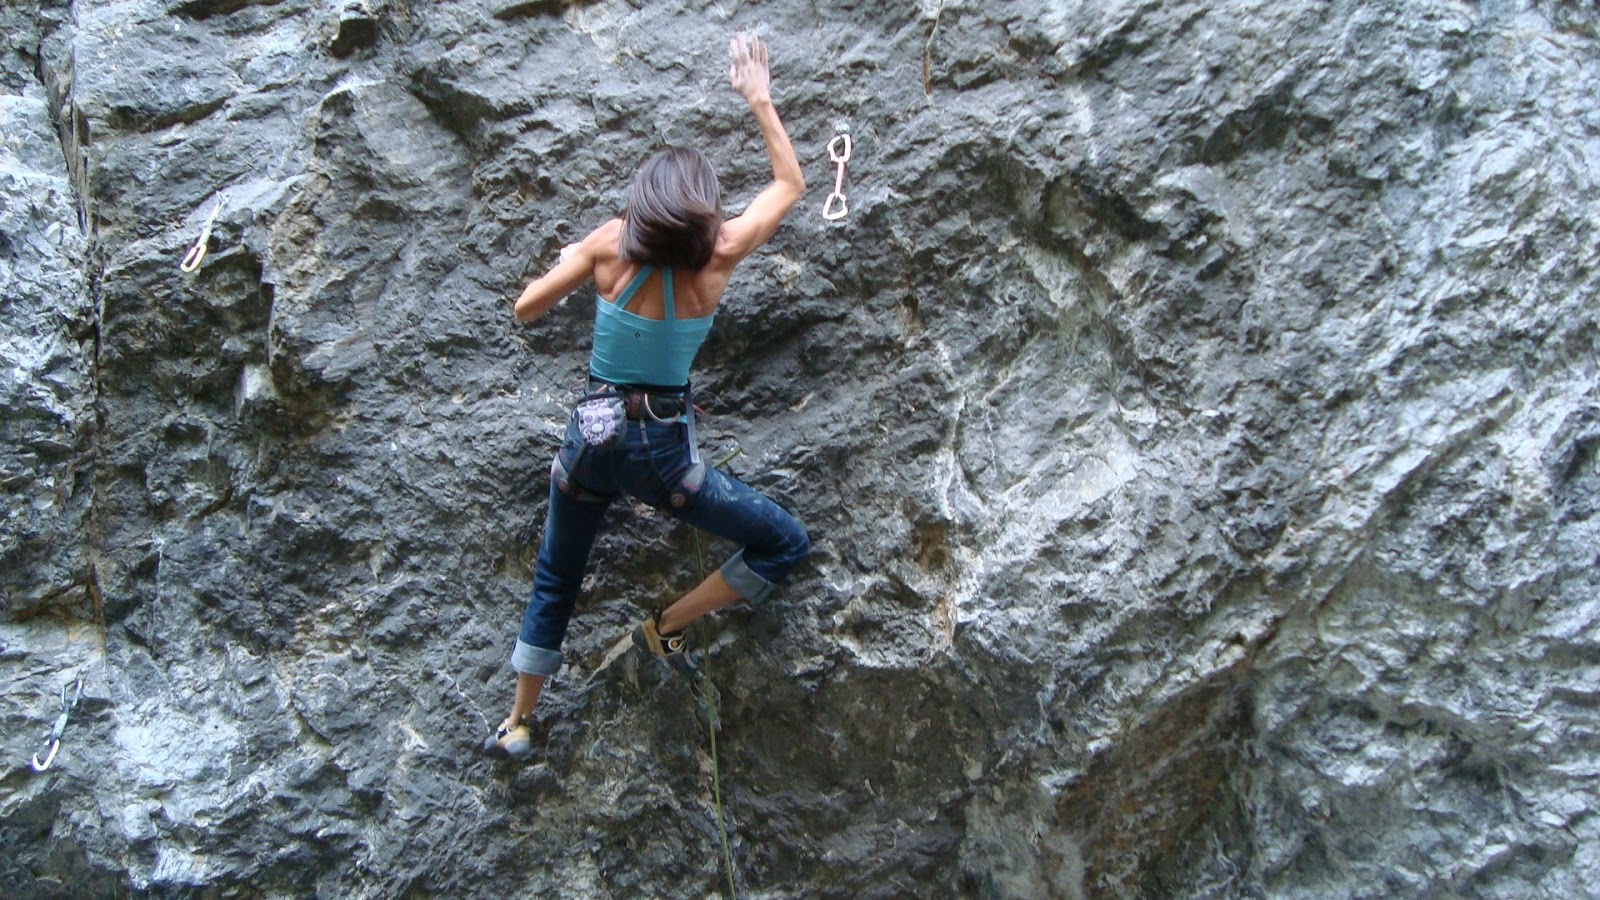 Women Climbing Mountain